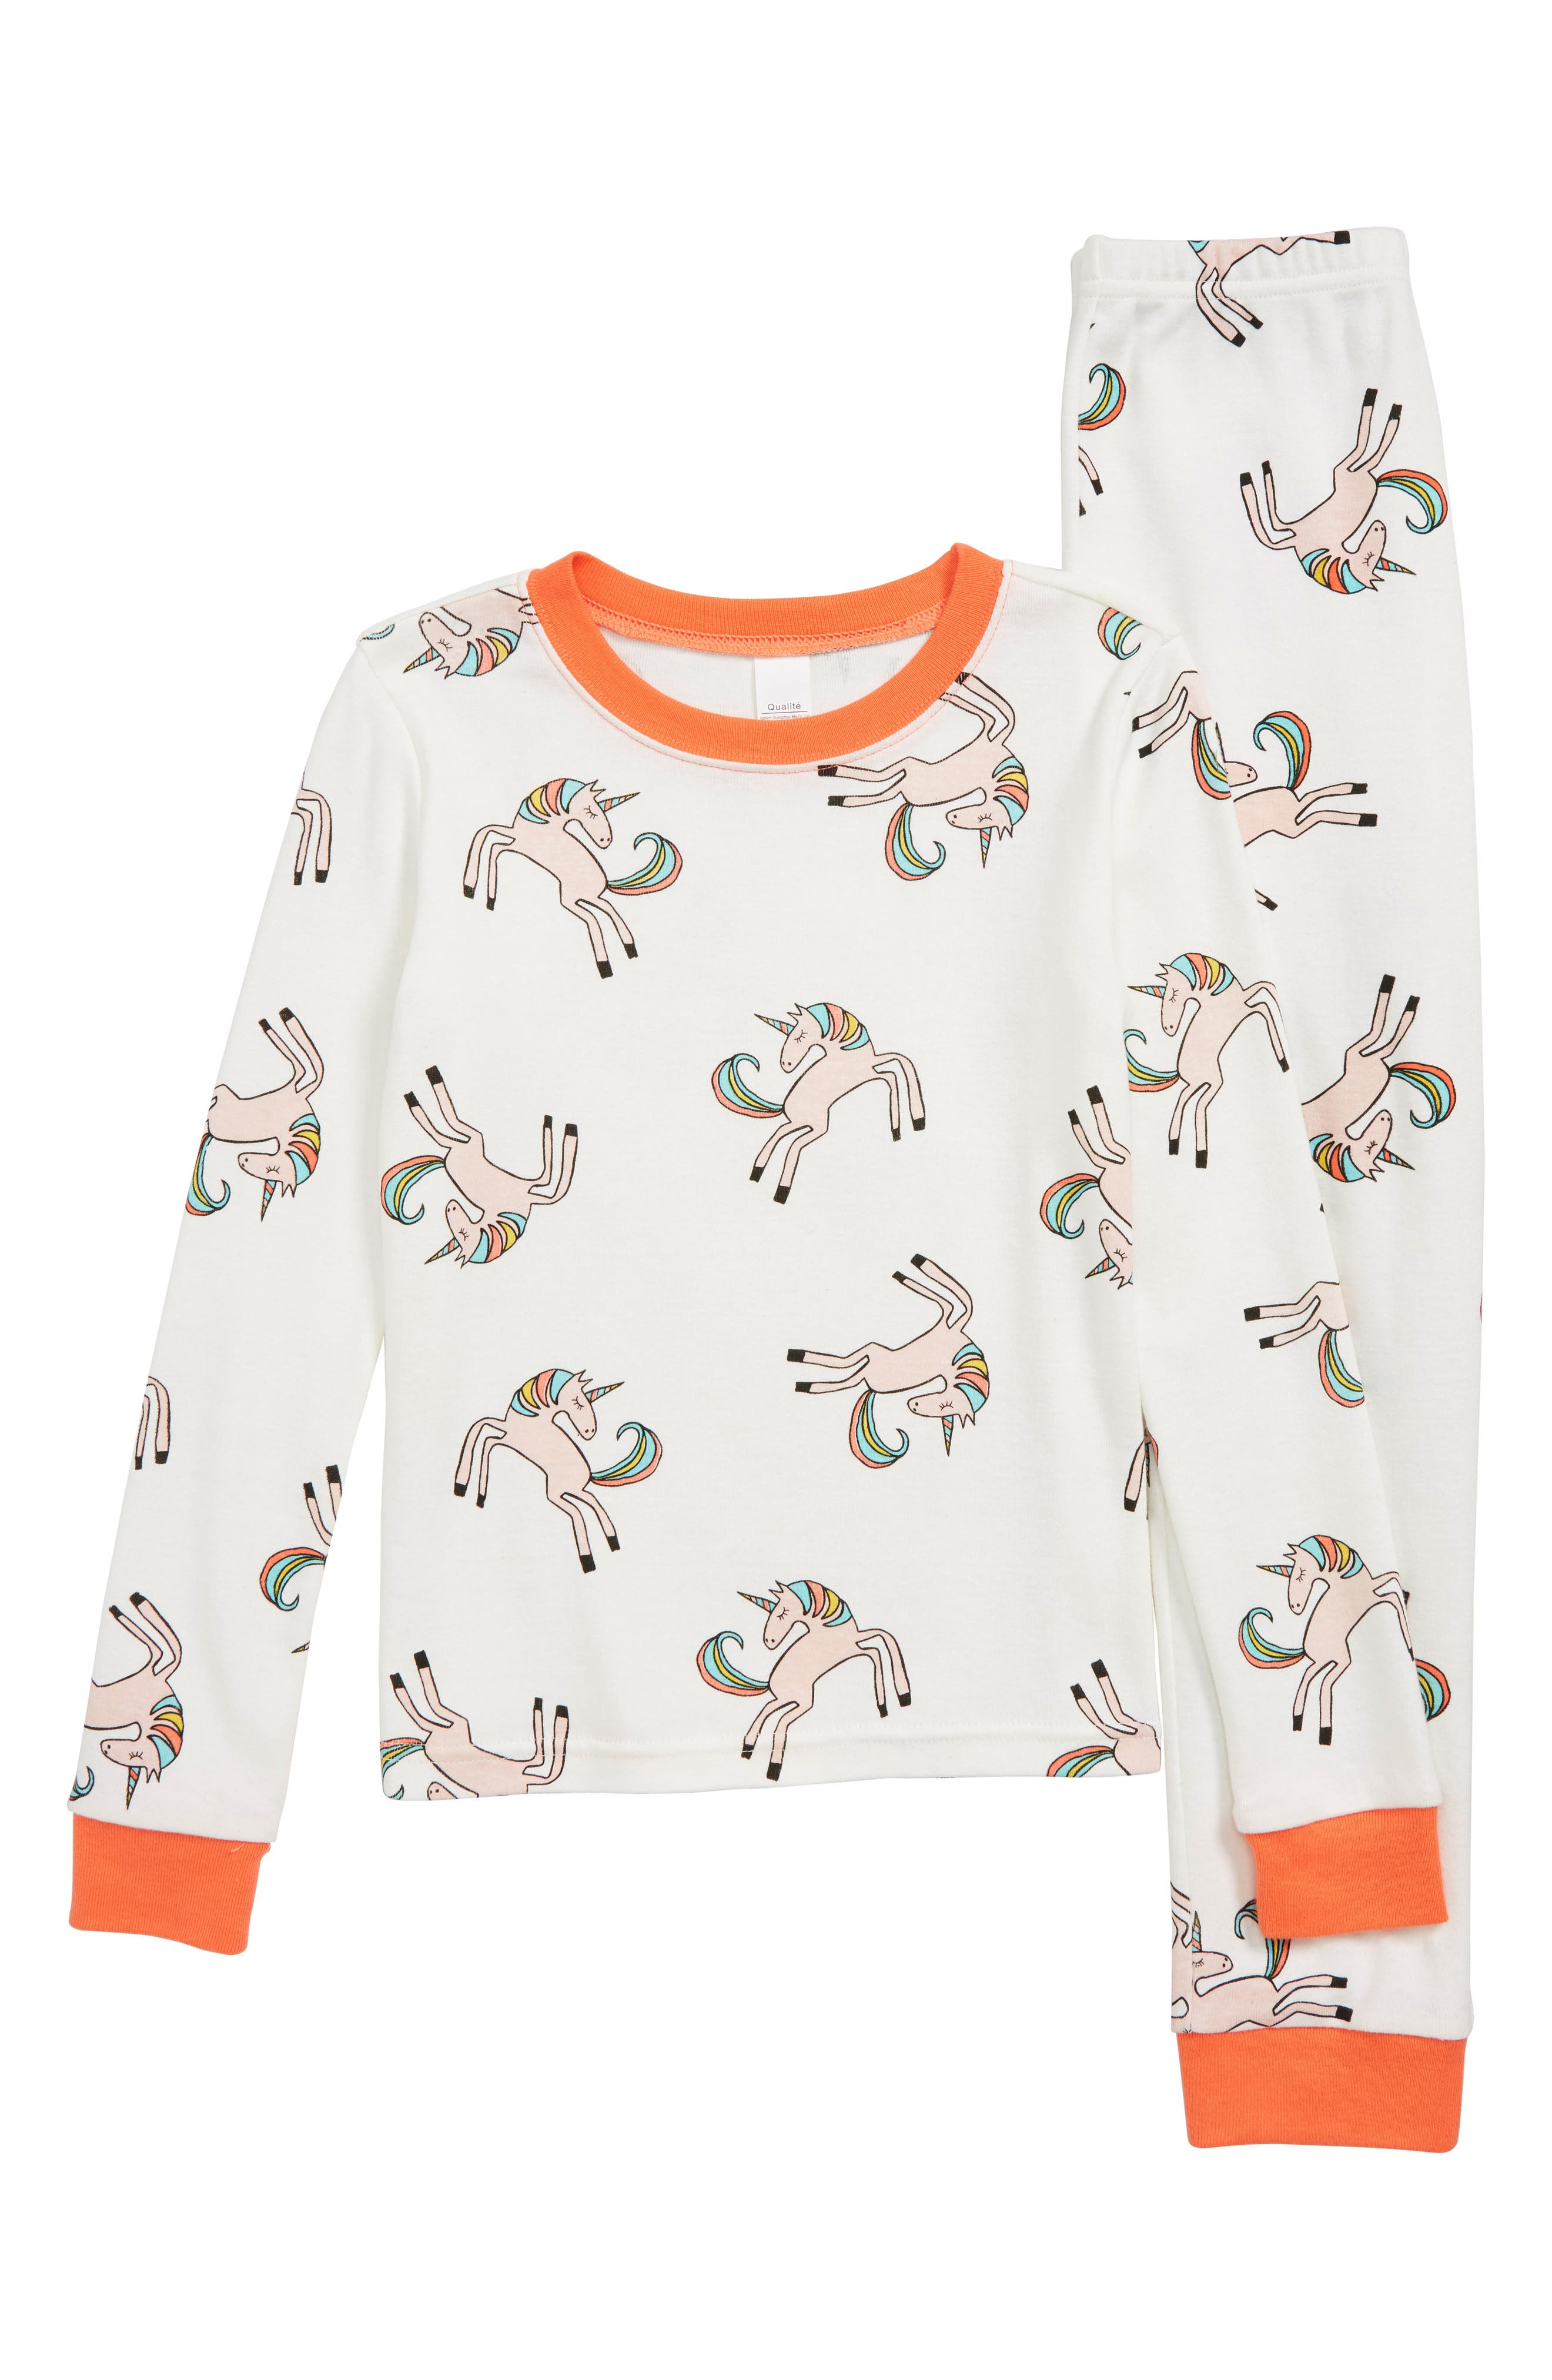 Toddler Girls Tucker  Tate Fitted TwoPiece Pajamas Size 3T  None